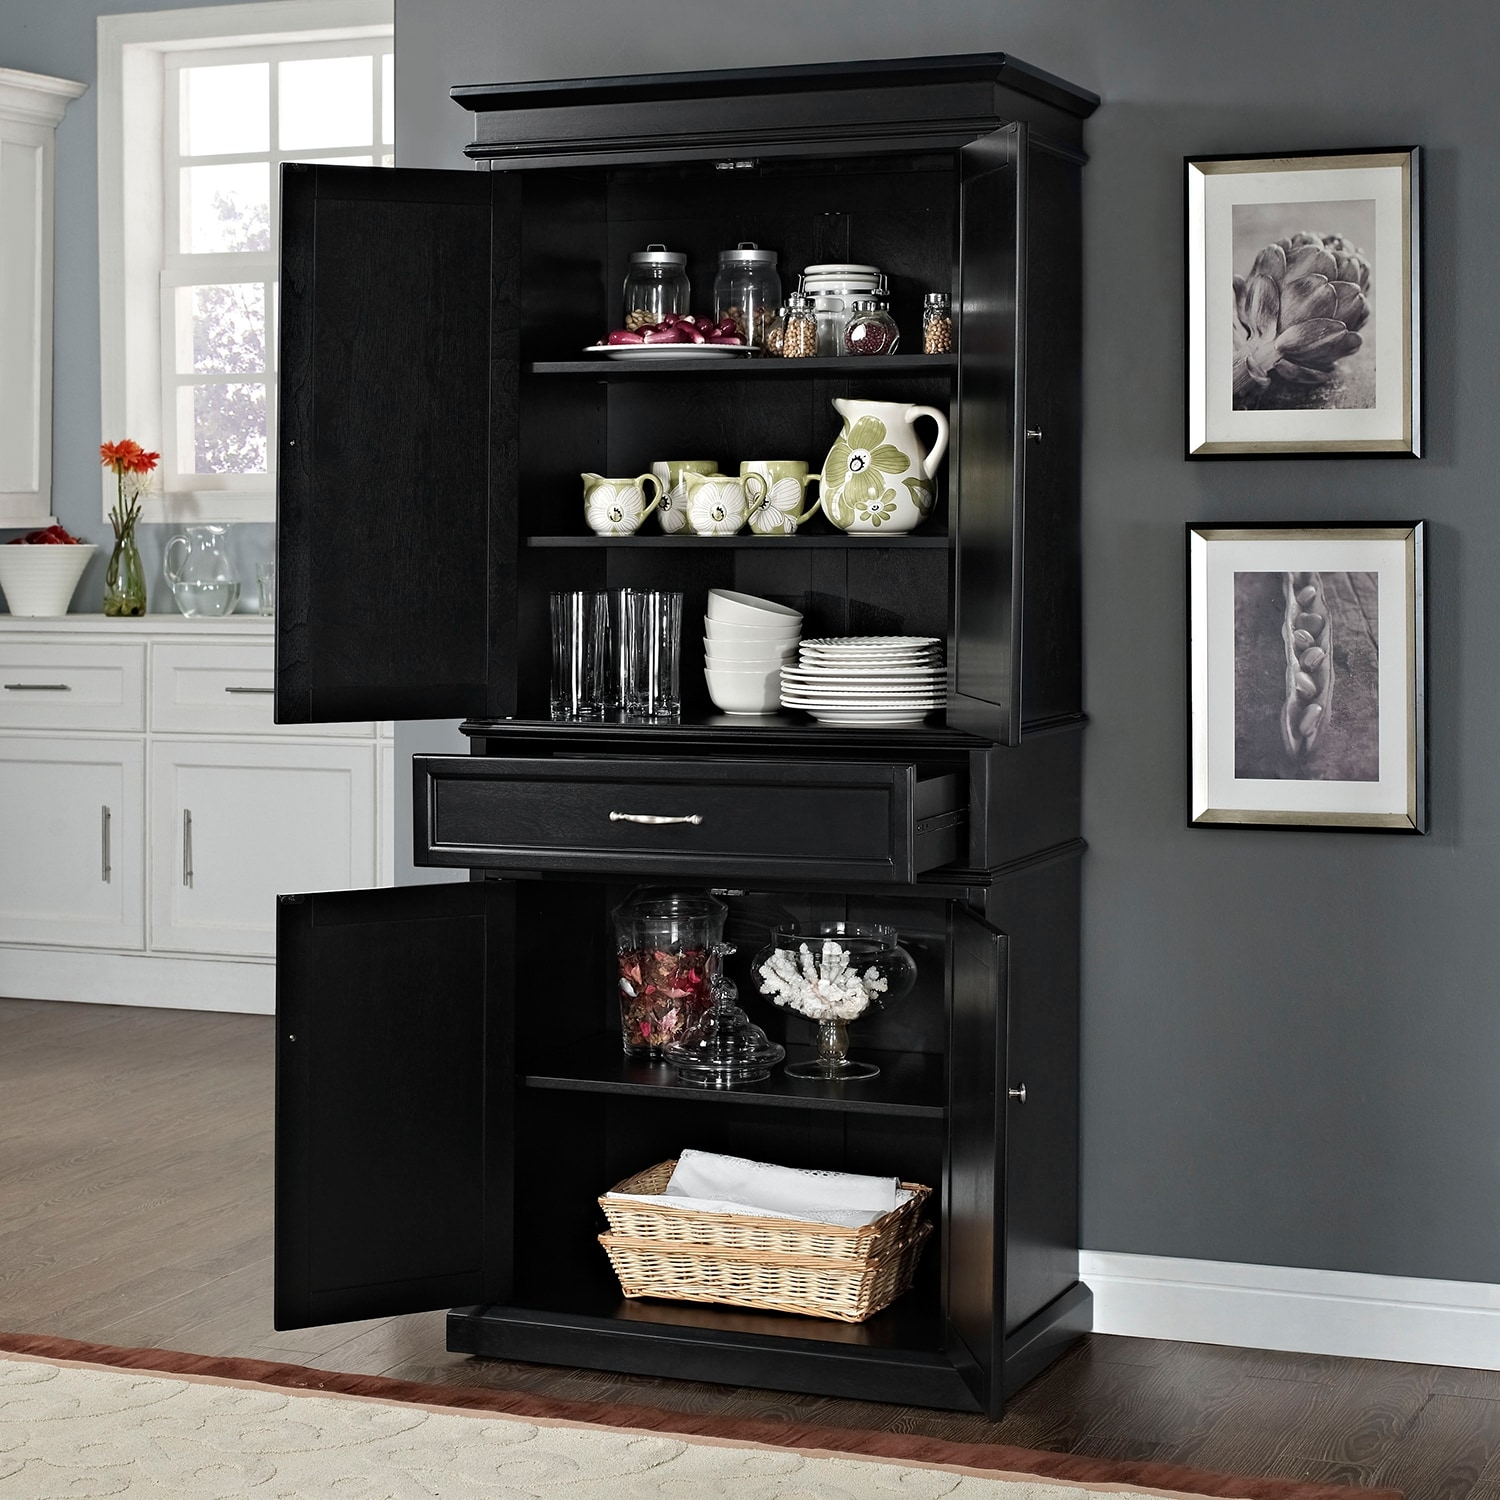 Midway Pantry Black Value City Furniture